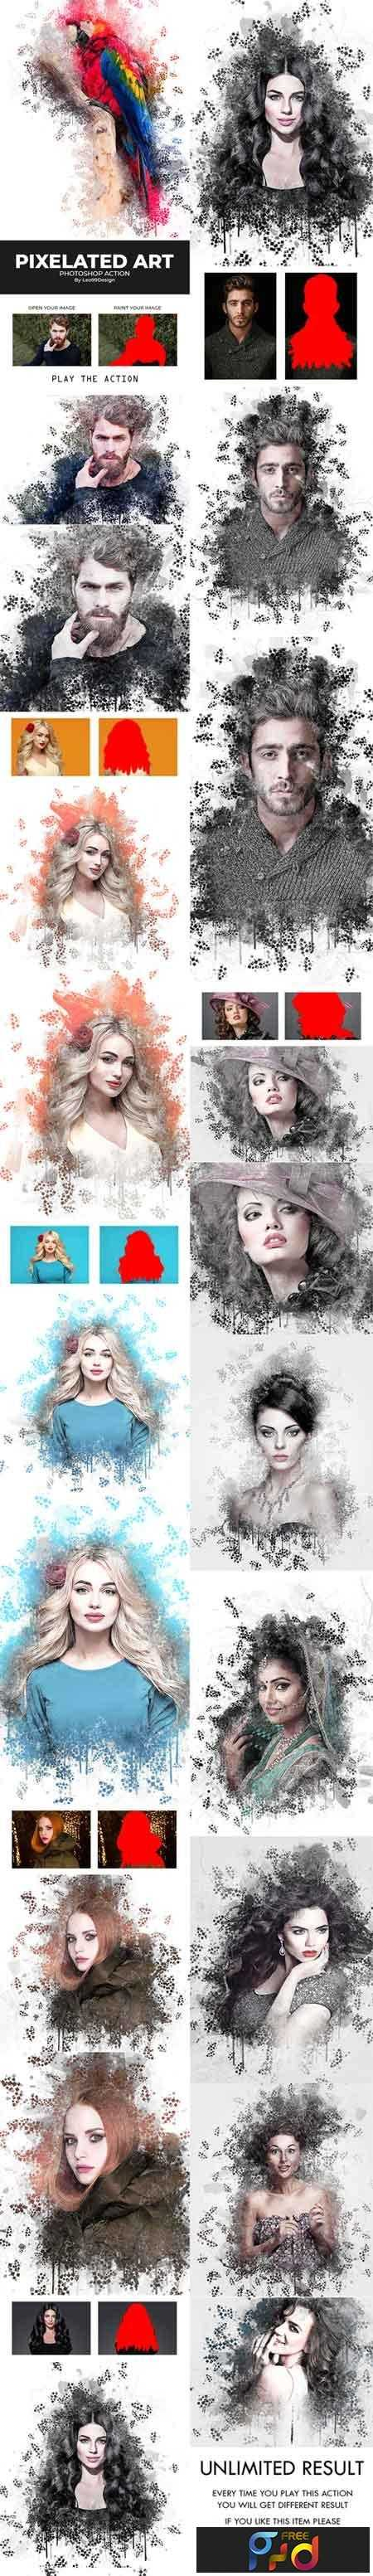 1812180 Pixelated Art Photoshop Action 22531992 1